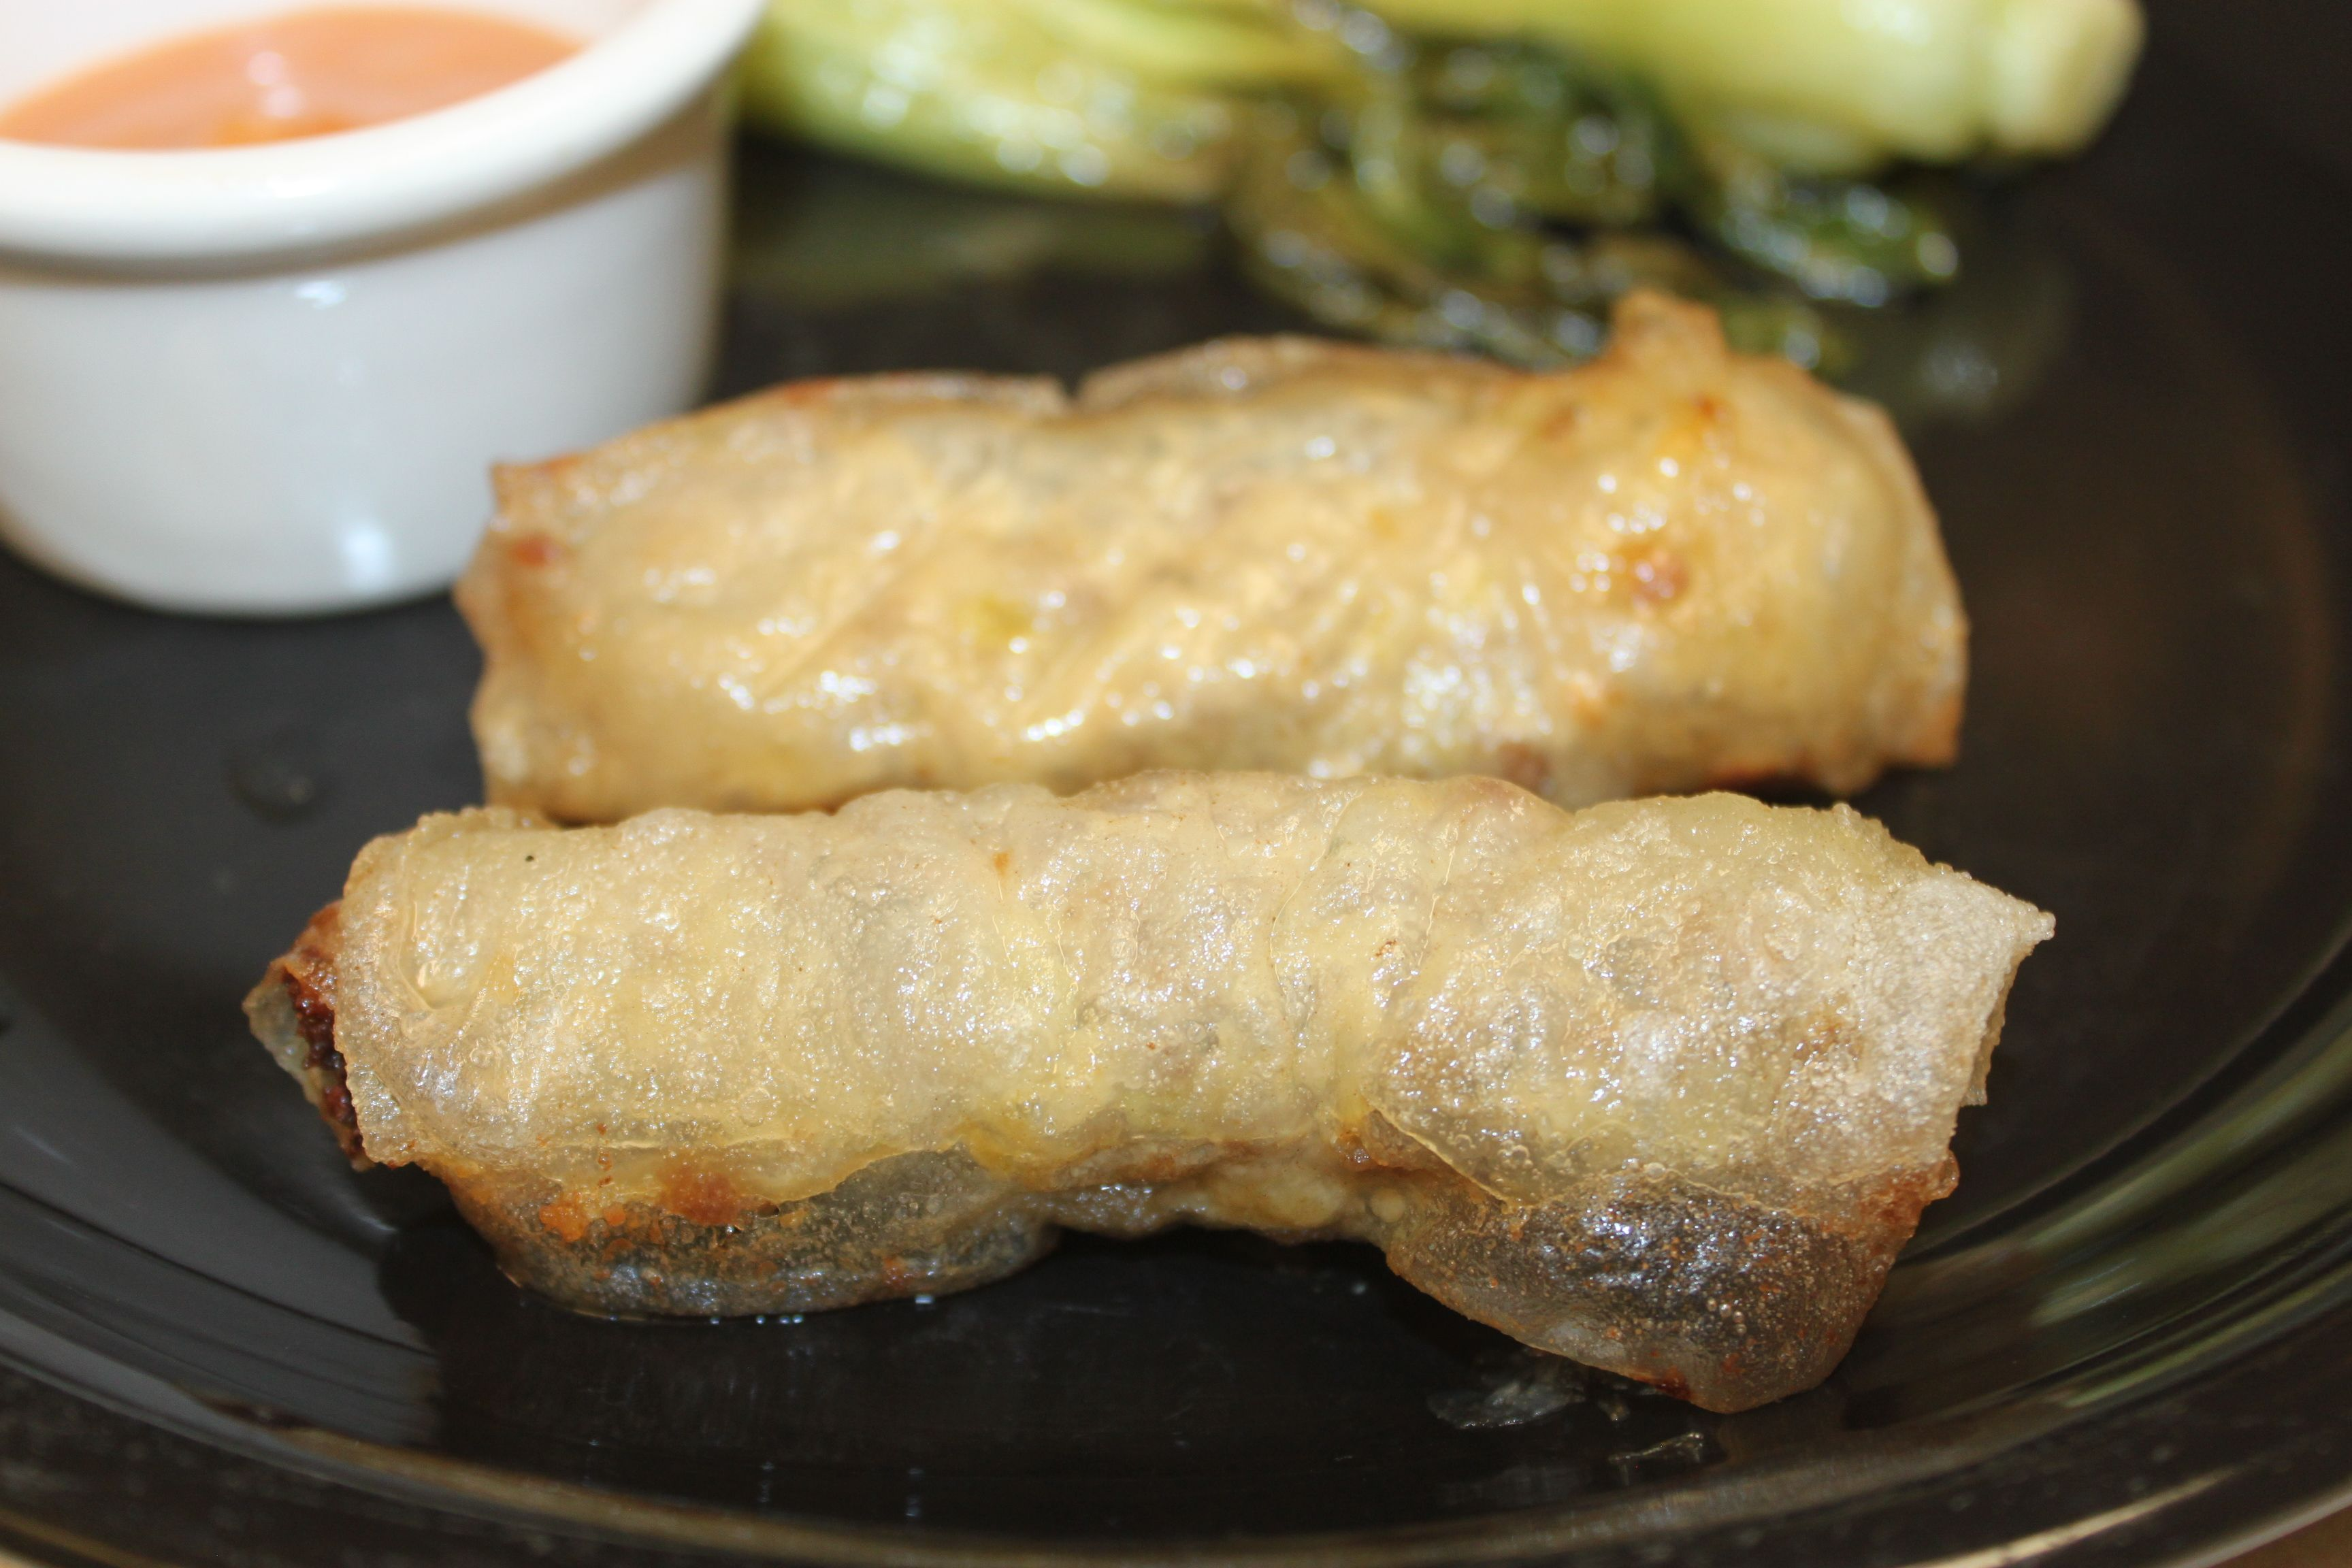 Gluten Free Filipino Lumpias Made With Rice Wrappers Rice Wrappers Gluten Free Recipes For Dinner Gluten Free Egg Roll Wrappers